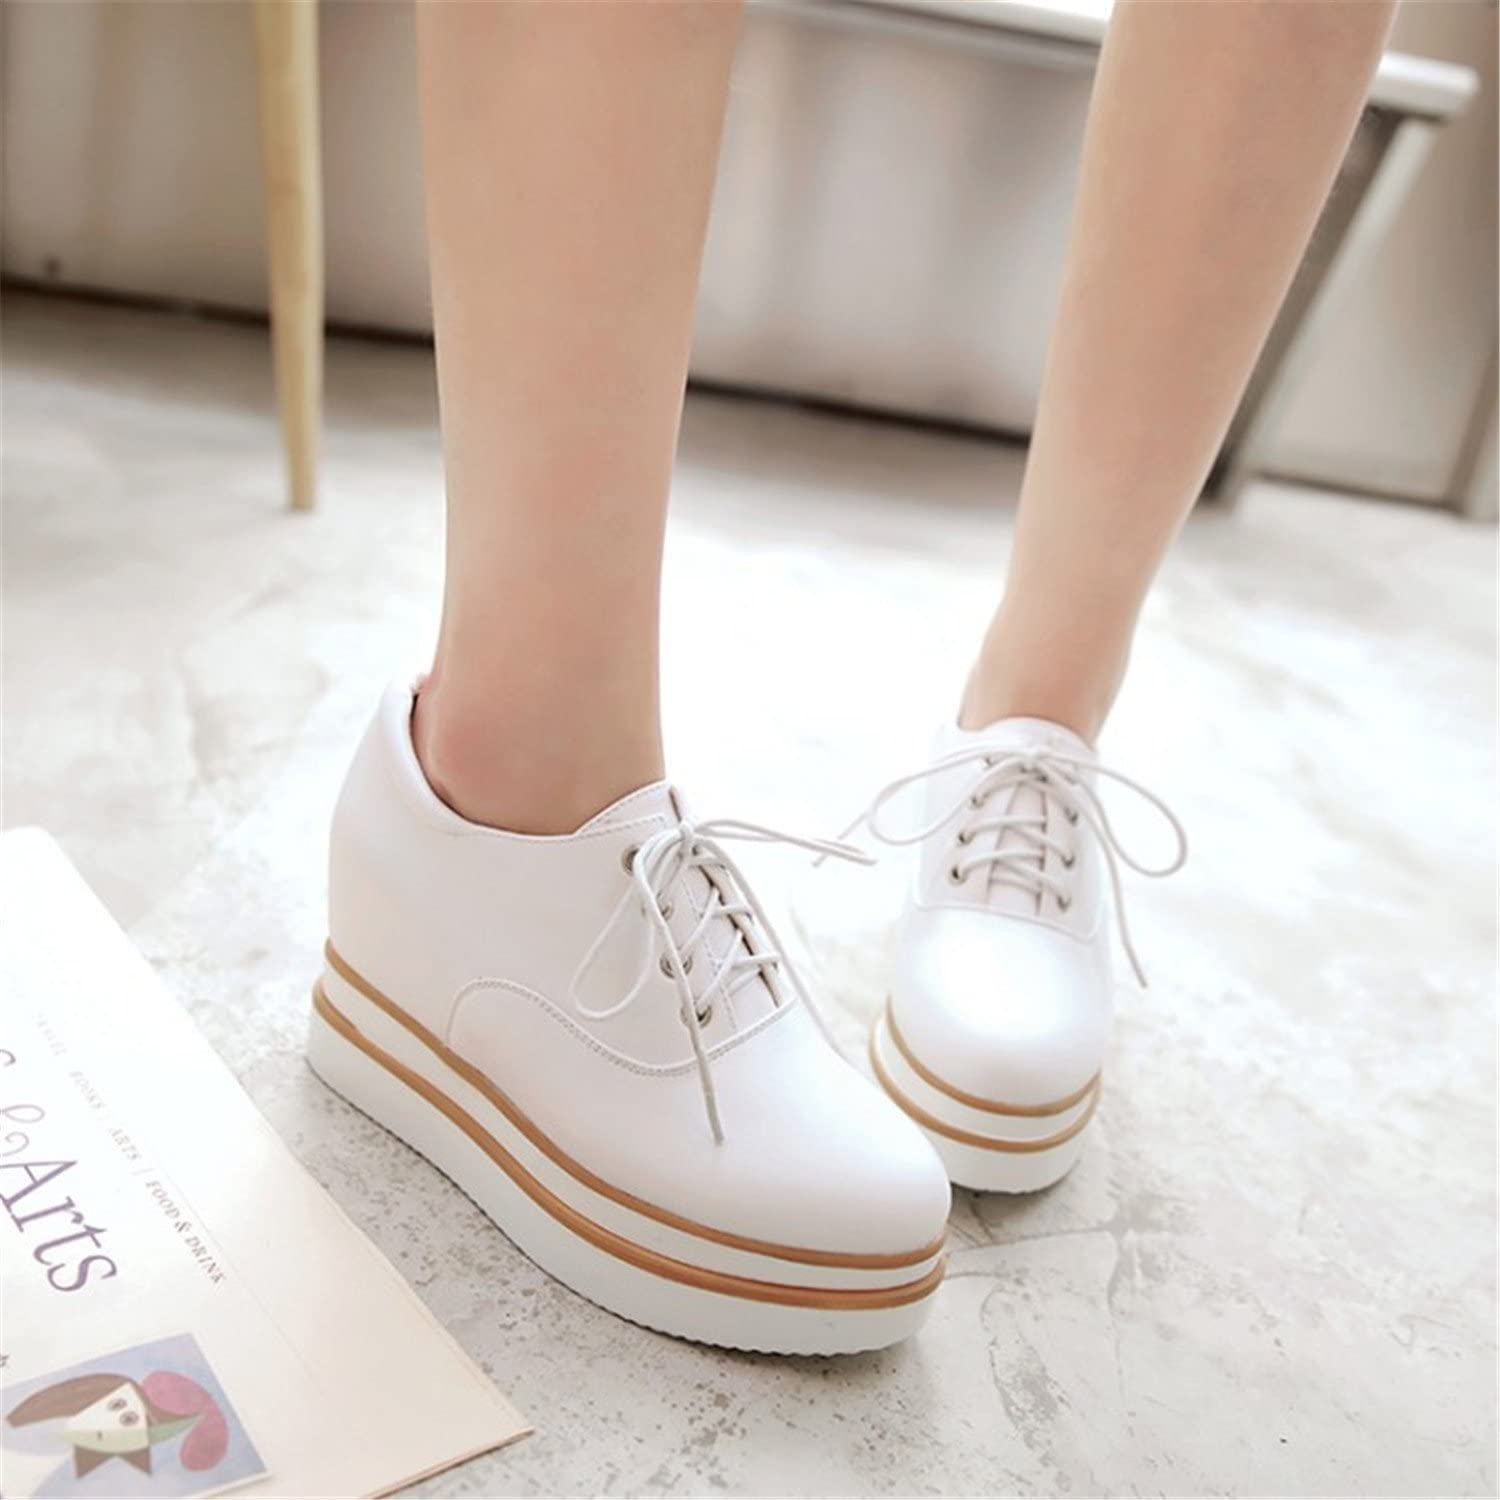 Dahanyi Stylish High Heel Wedges shoes Platform Women Lace up Casual shoes Sexy Women shoes Fall Winter Height Increasing shoes Big Size